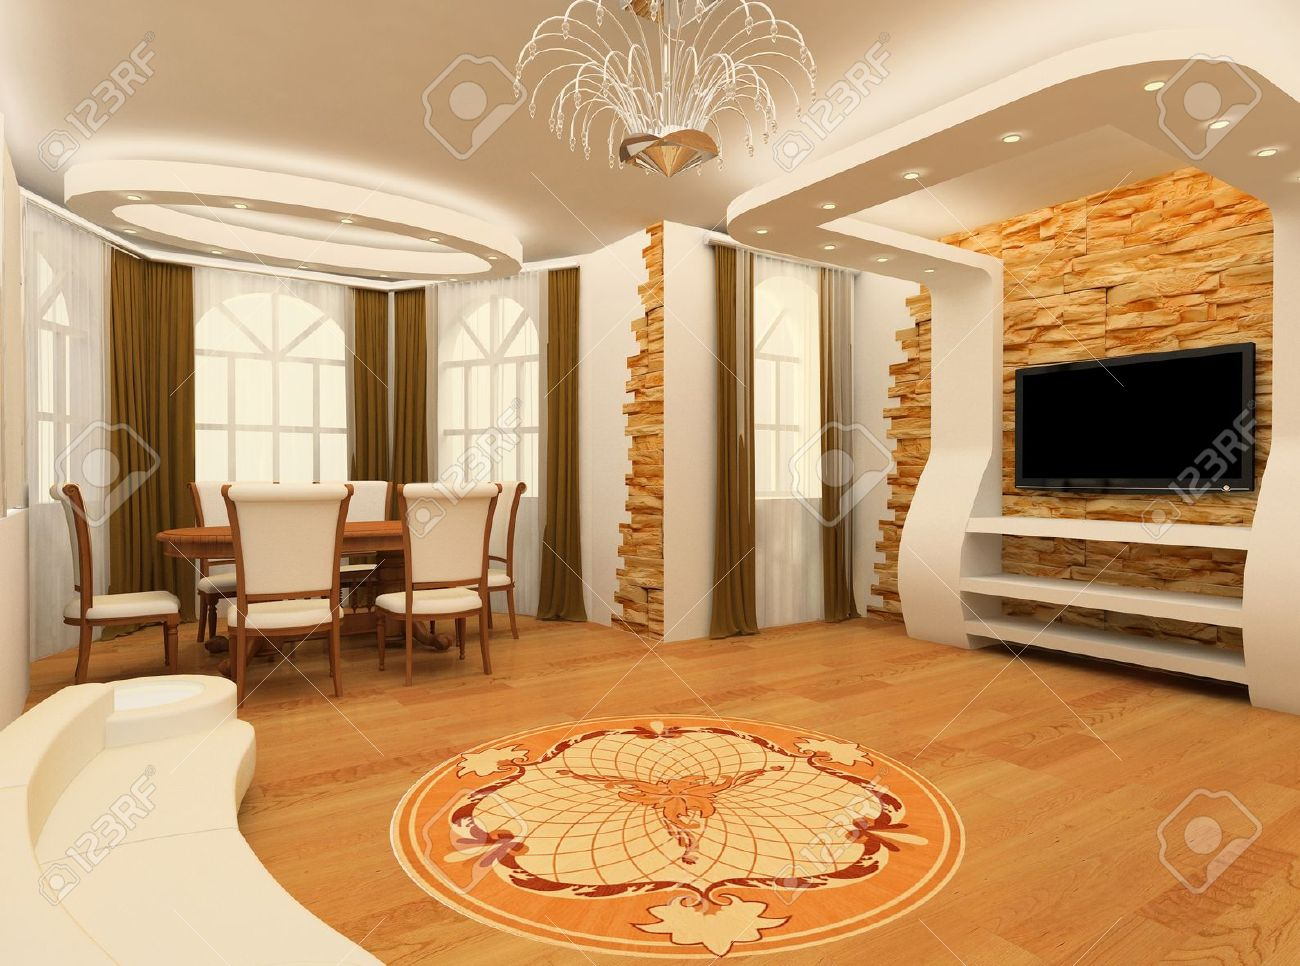 Decorative Ornament With Laminated Flooring Board Nd Brick